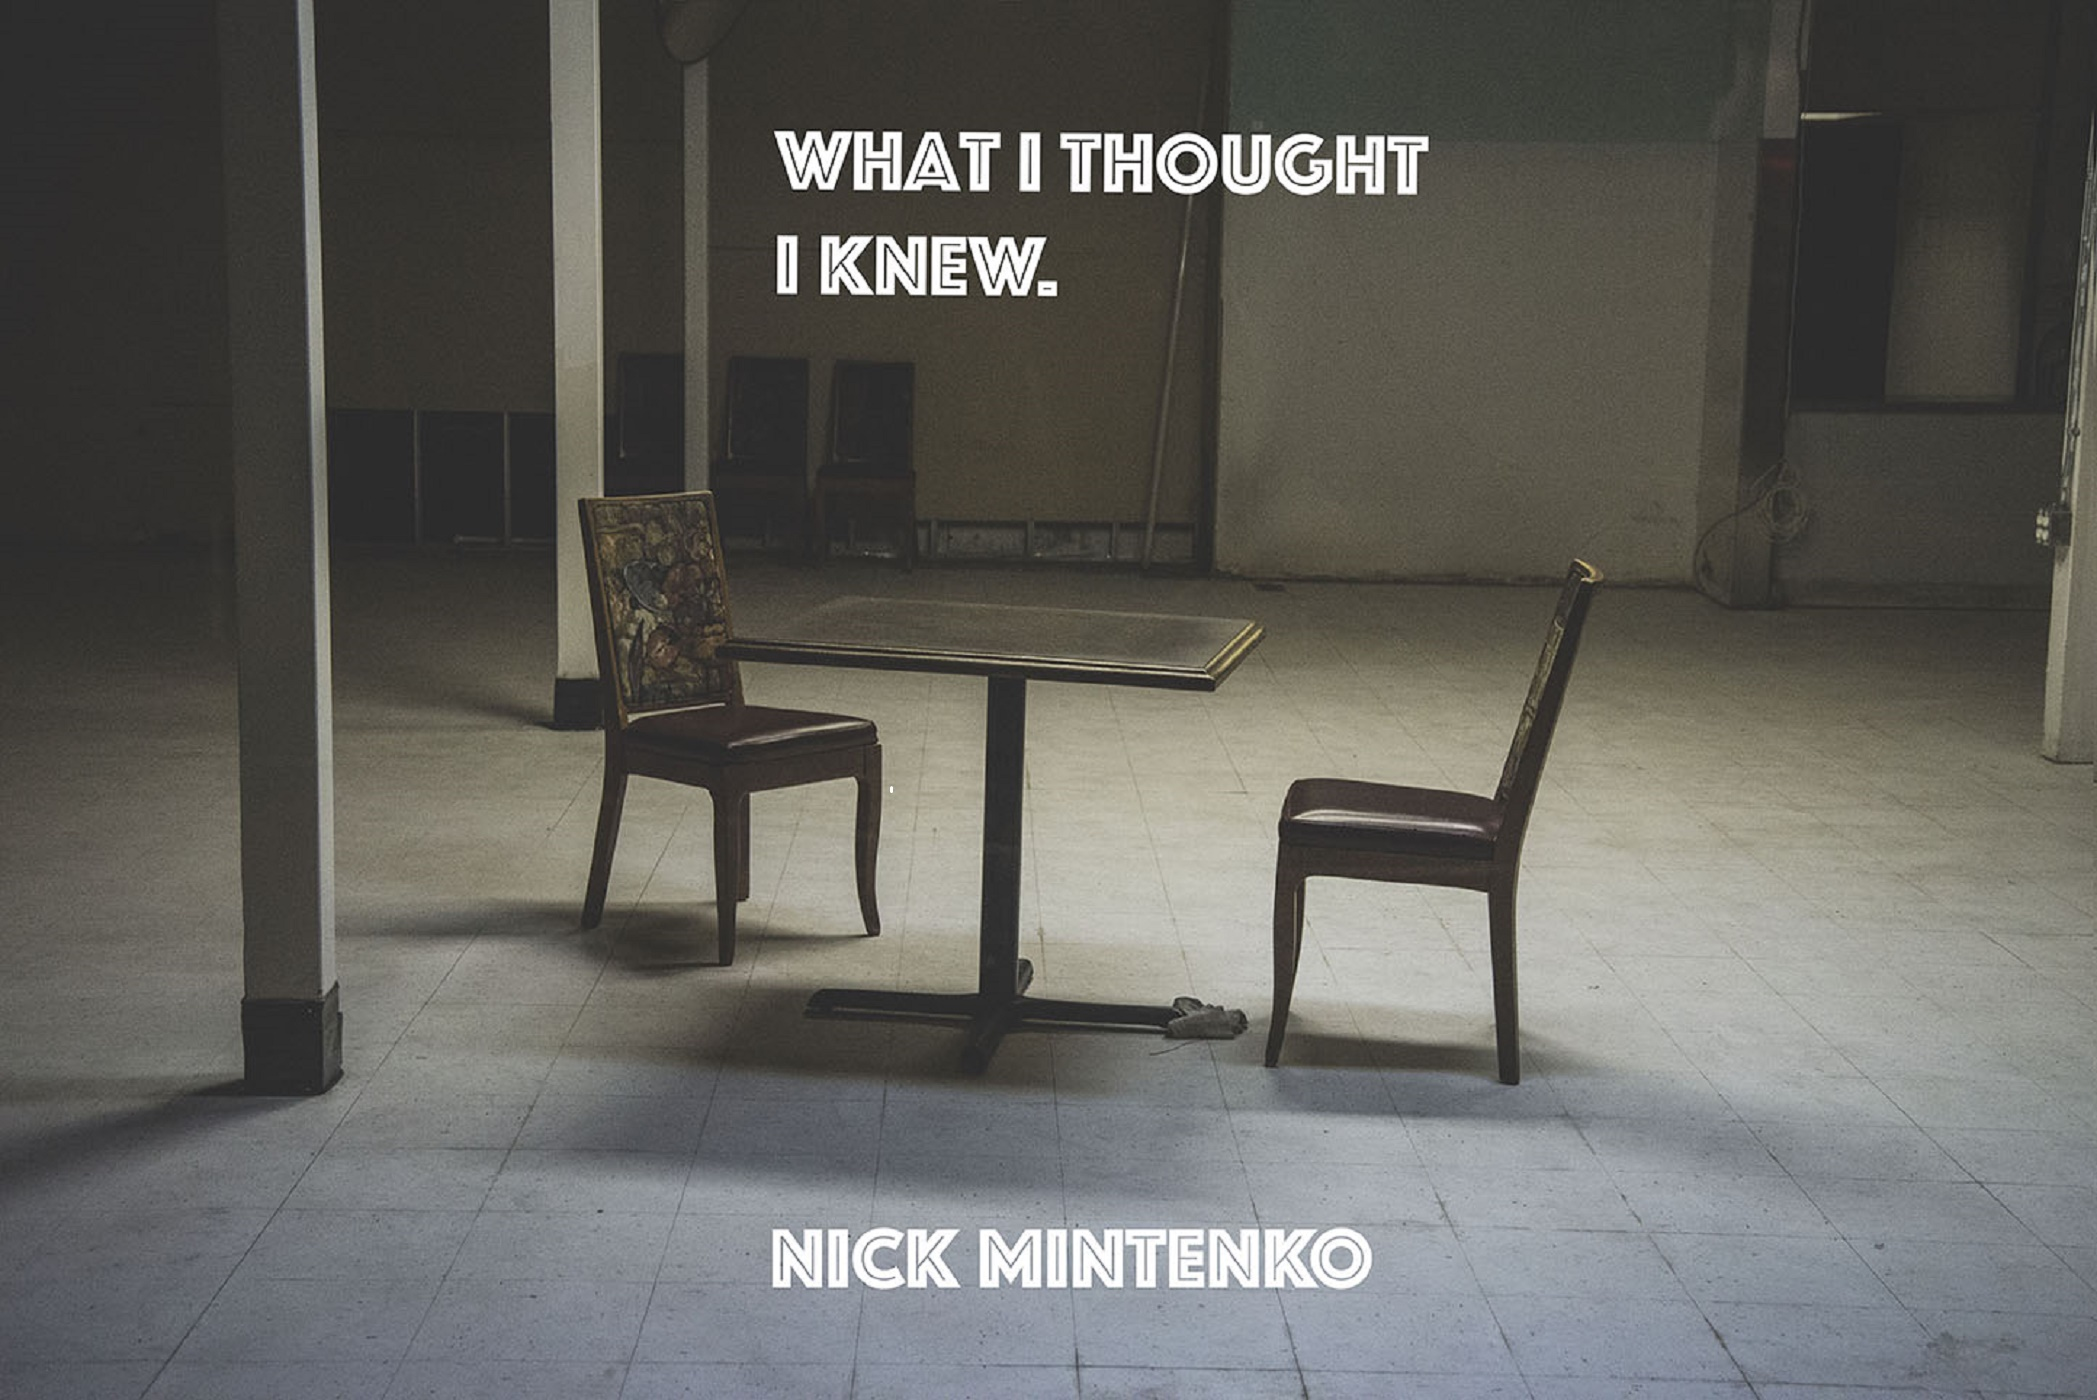 Nick Mintenko - What I Thought I Knew